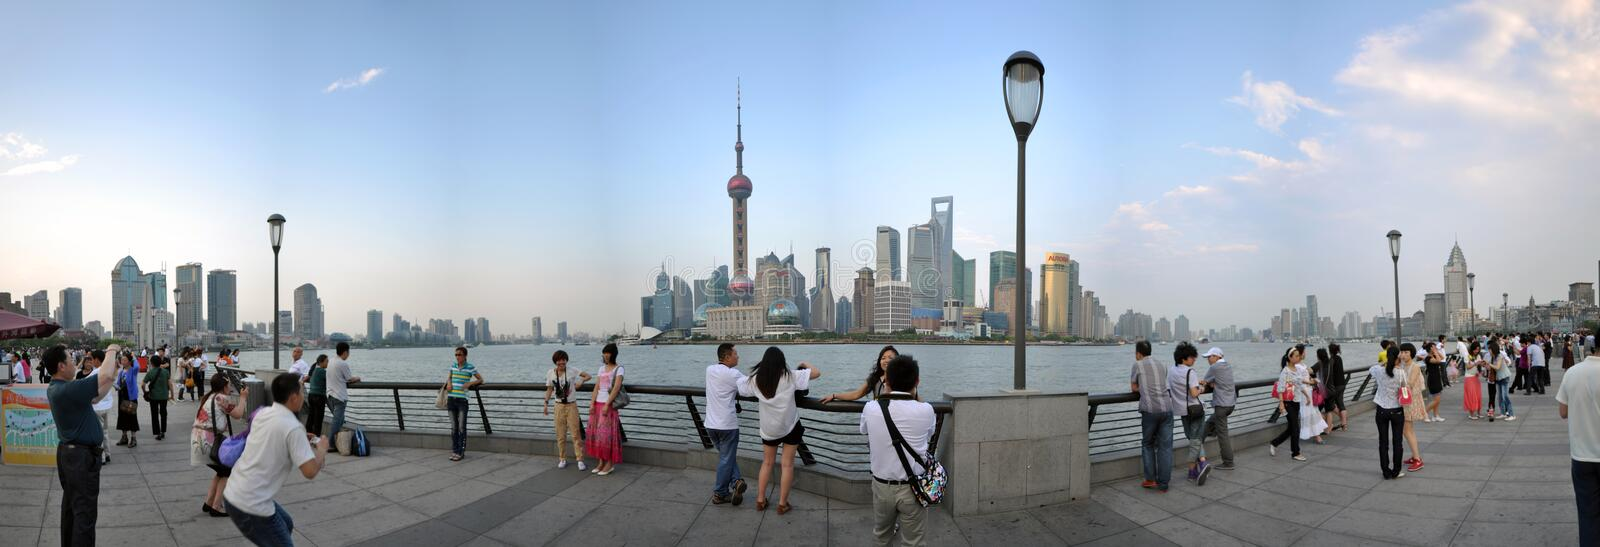 Download Panoramic View Of The Bund, Shanghai, China Editorial Stock Photo - Image: 19506428